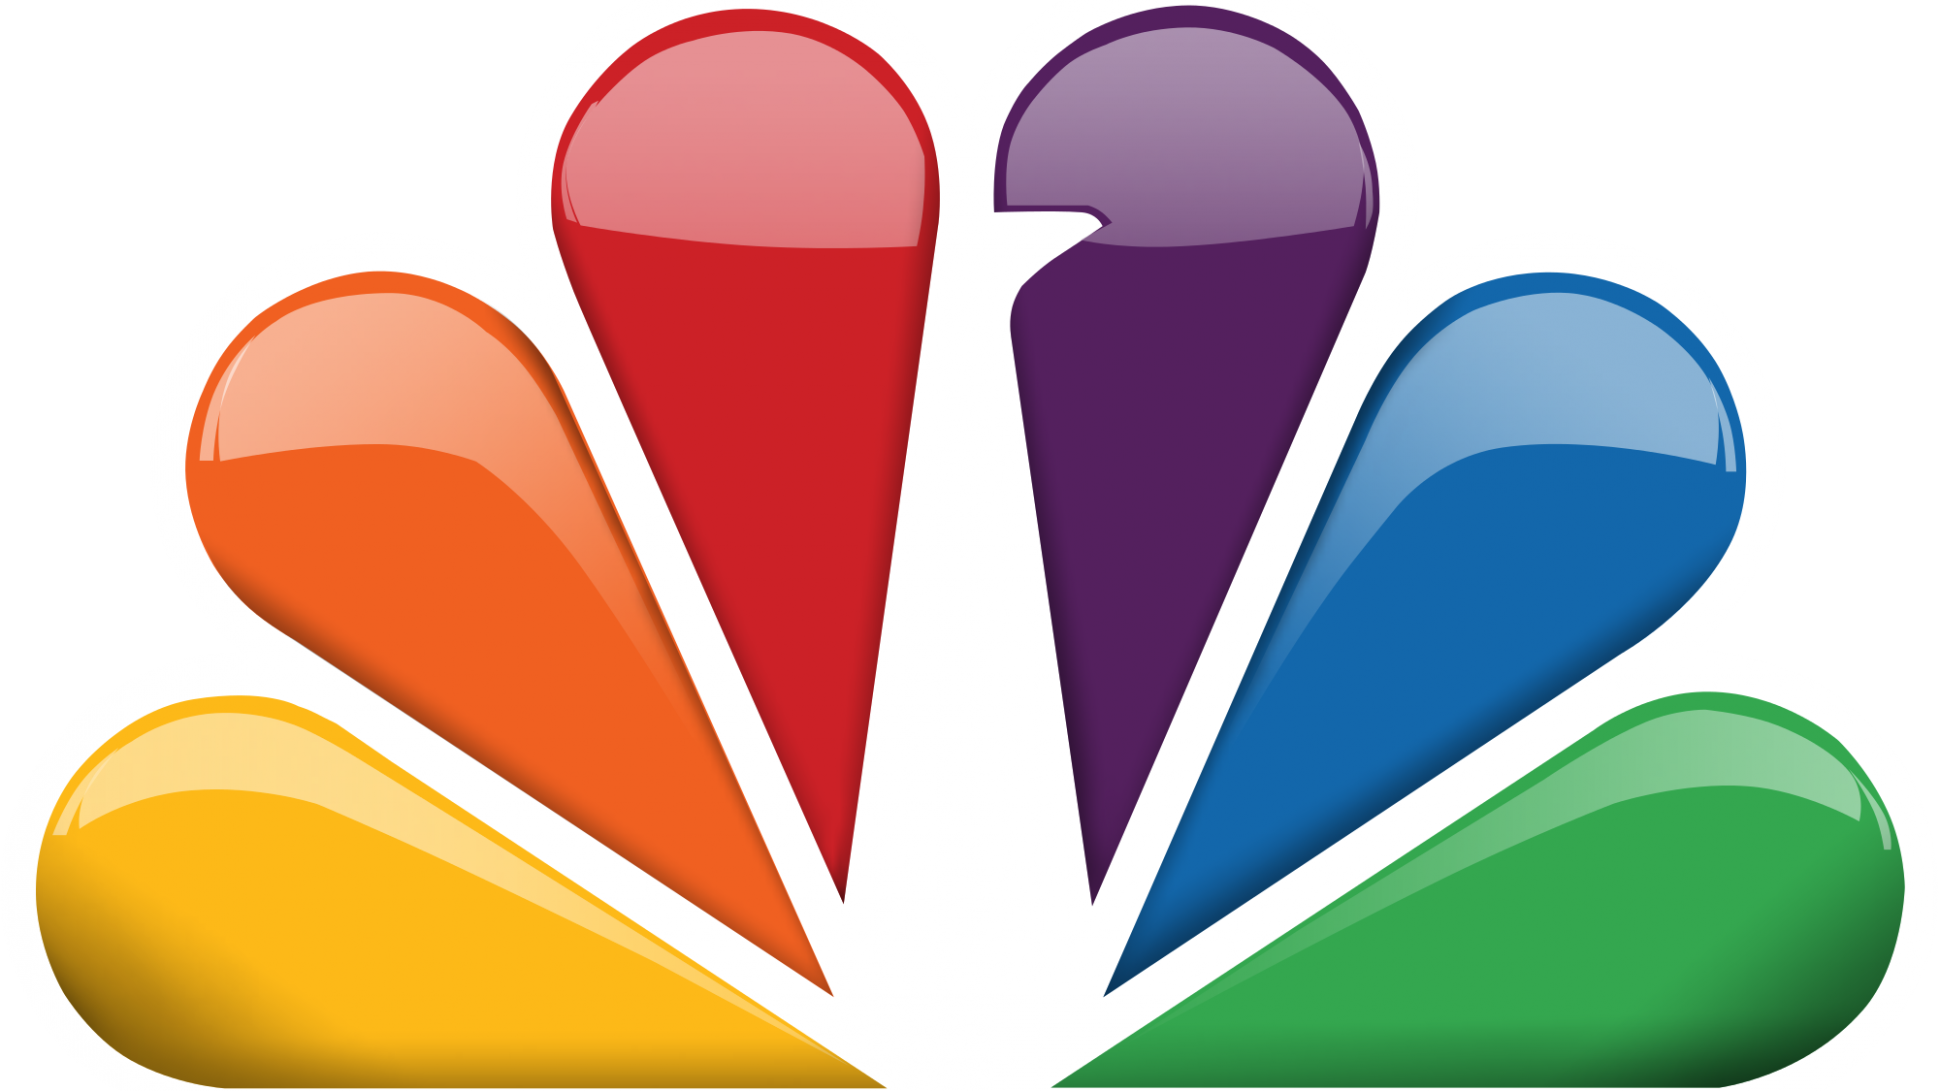 nbc fall schedule confirms comedy is not a priority png logo #4535